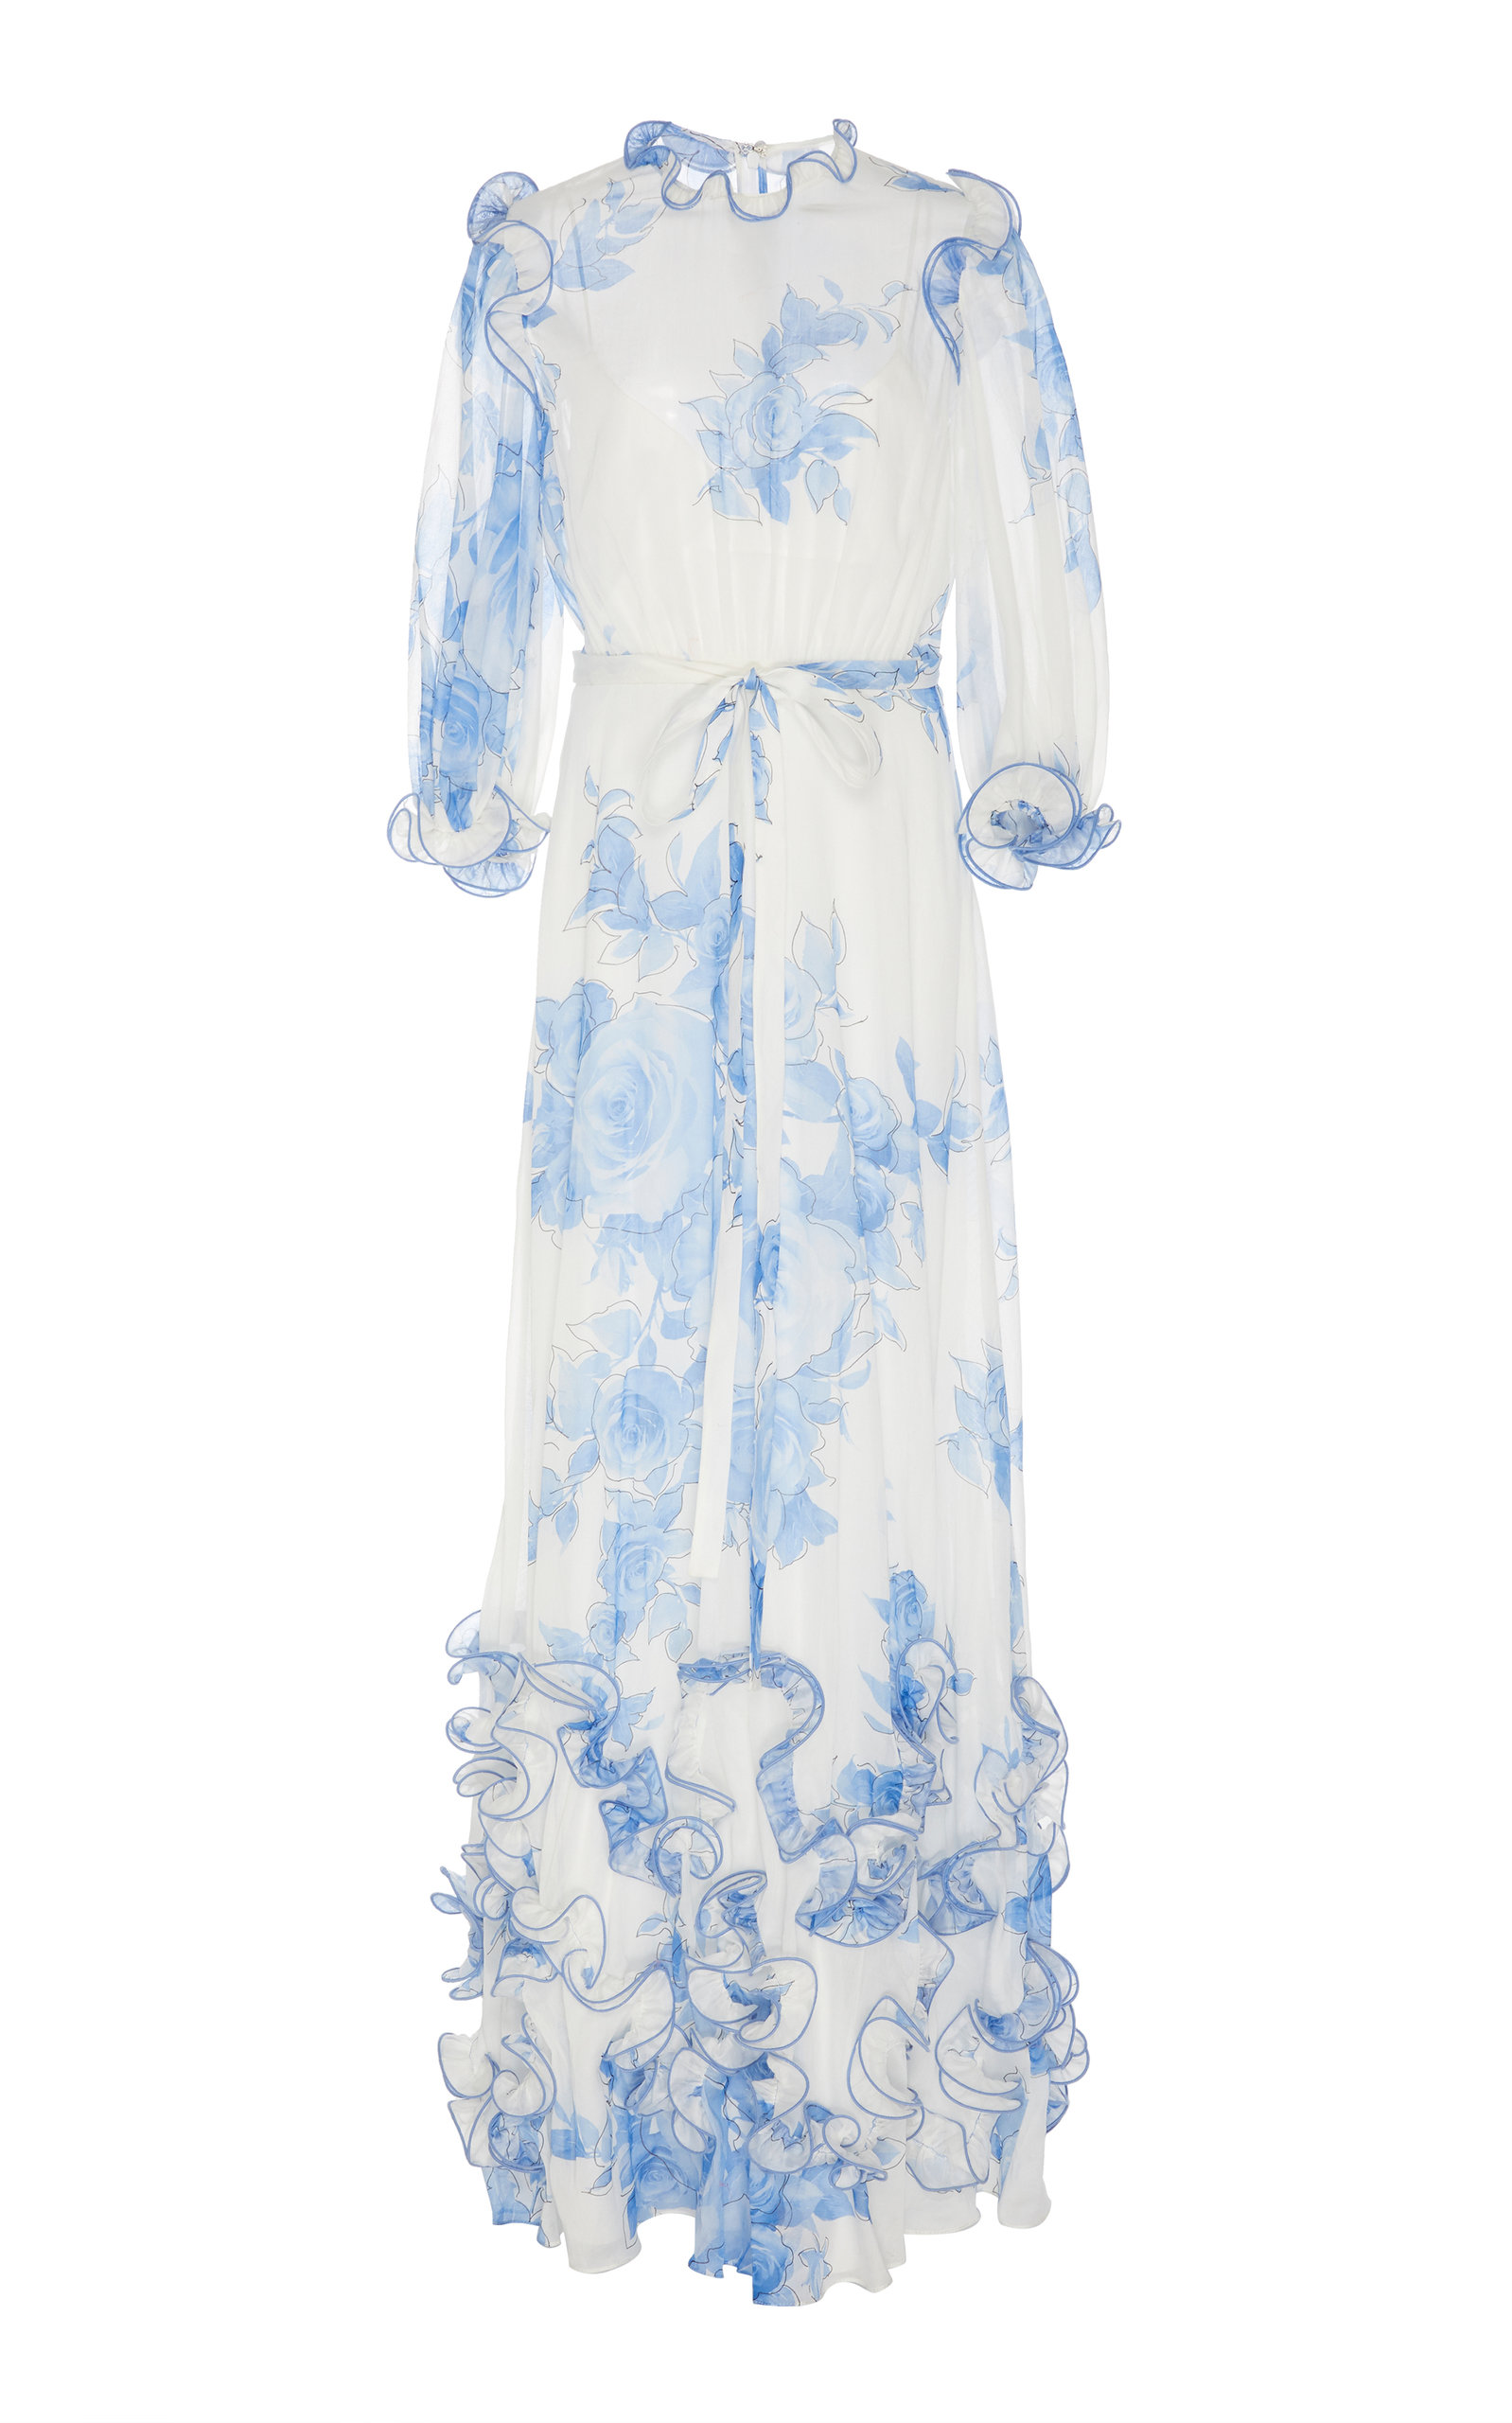 Buy Lela Rose Ruffled Floral Cotton Voile Dress online, shop Lela Rose at the best price